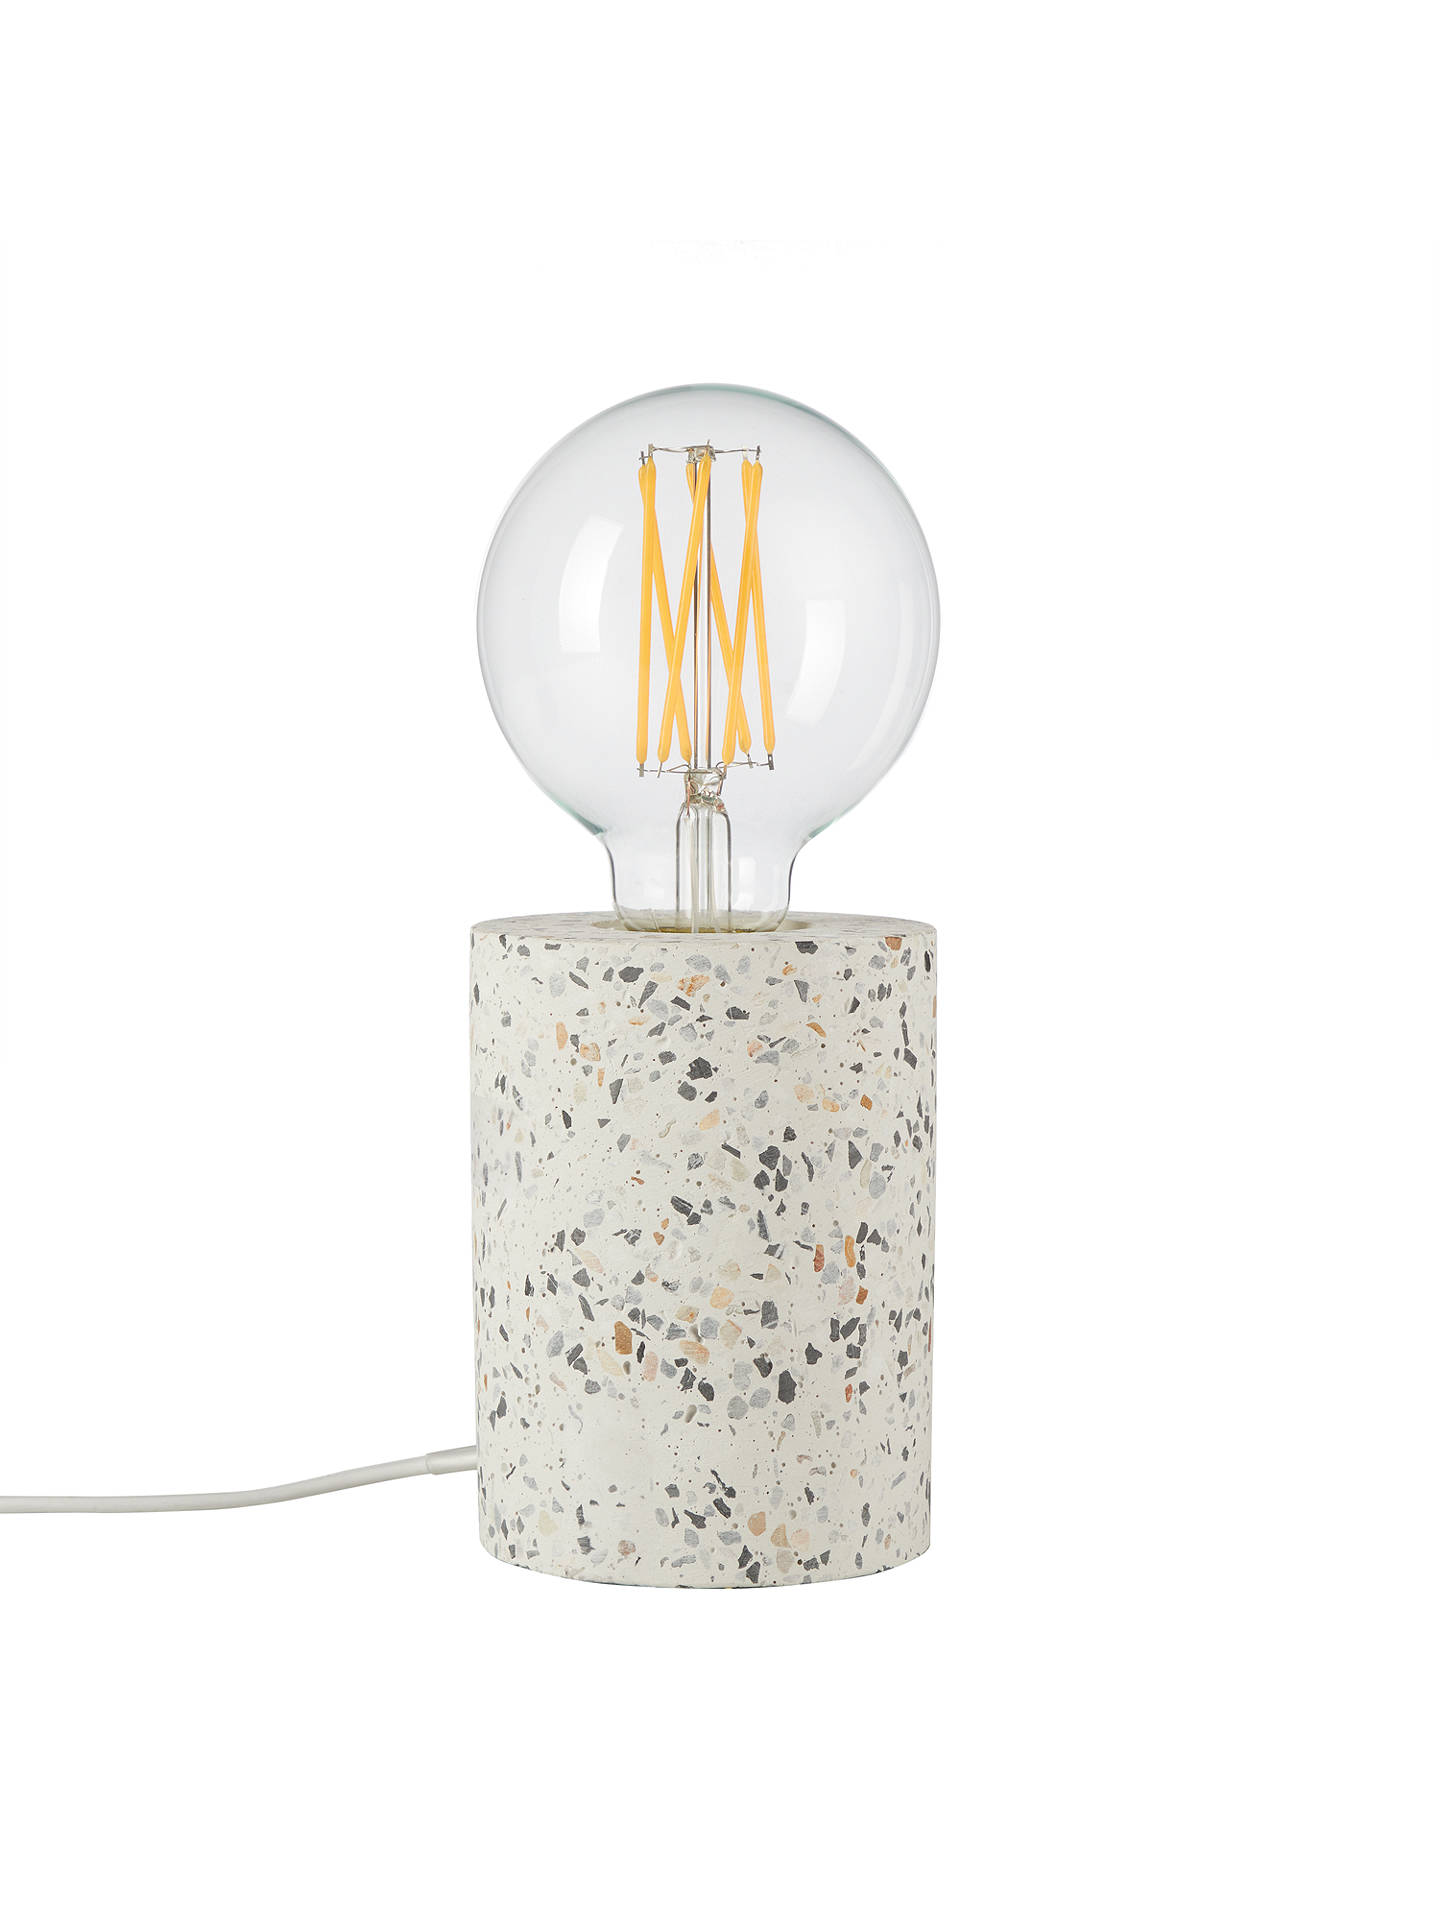 BuyHouse by John Lewis Terrazzo Ceramic Bulbholder Table Lamp, White/Multi Online at johnlewis.com